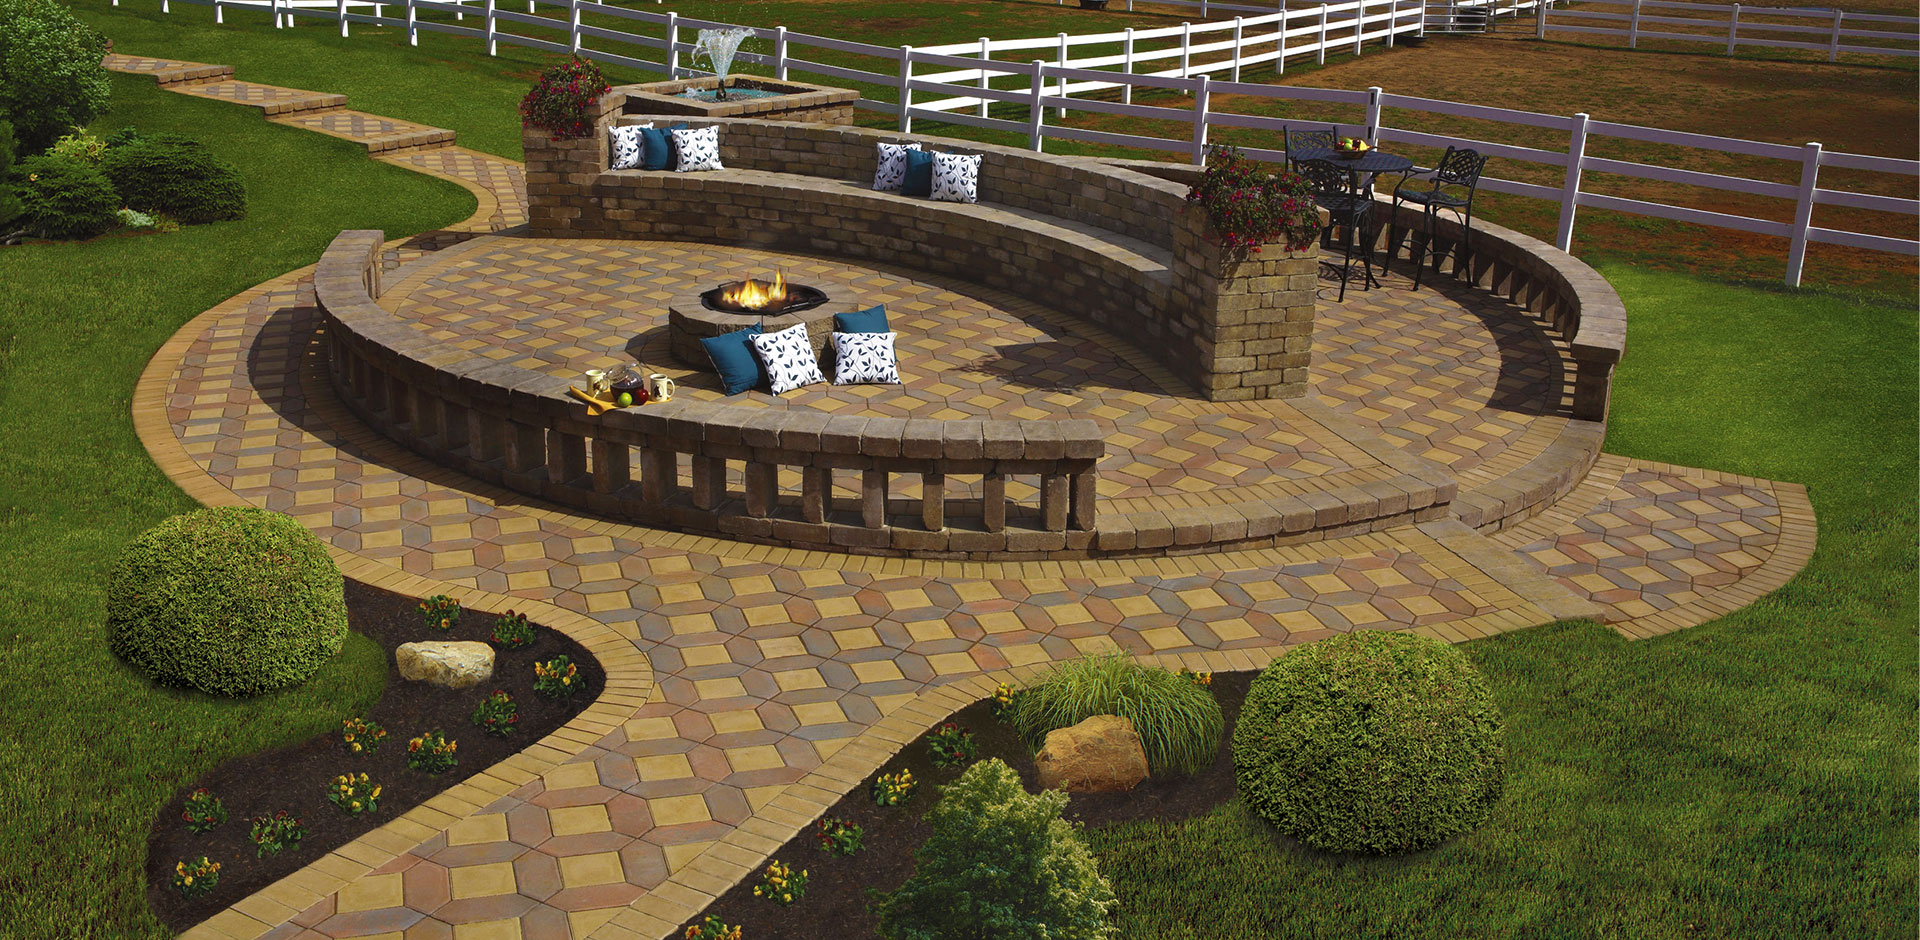 Circular backyard patio with wall and walkway made from Excalibur paving stones